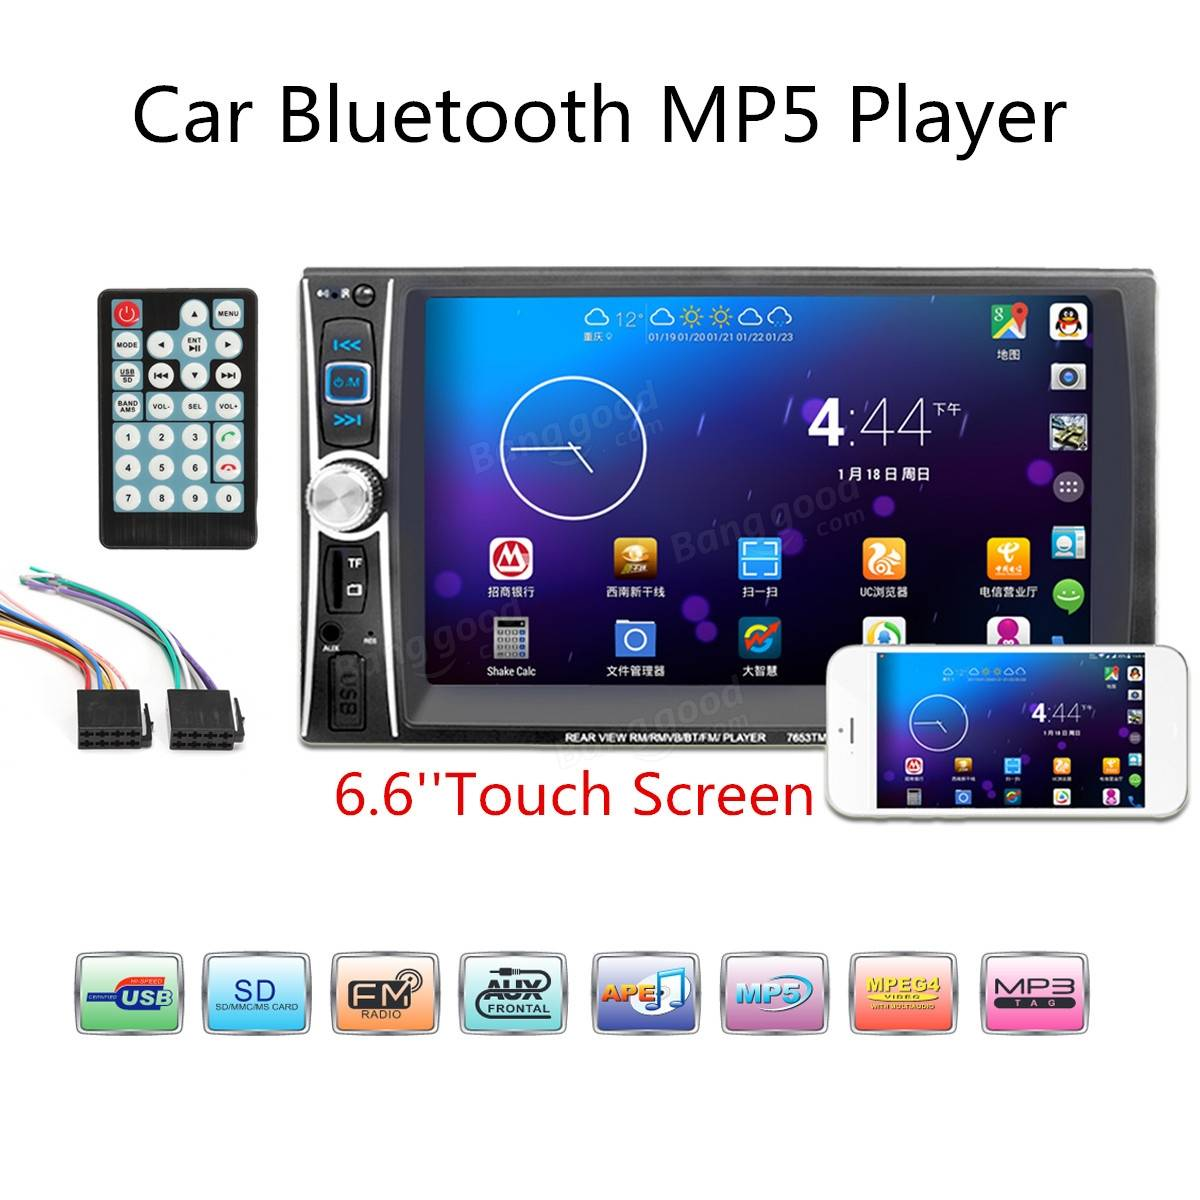 7653tm 6 6 inch 2 din bluetooth touchscreen car mp5 player stereo radio fm usb aux camera sale flac 3d user manual Manuals in PDF